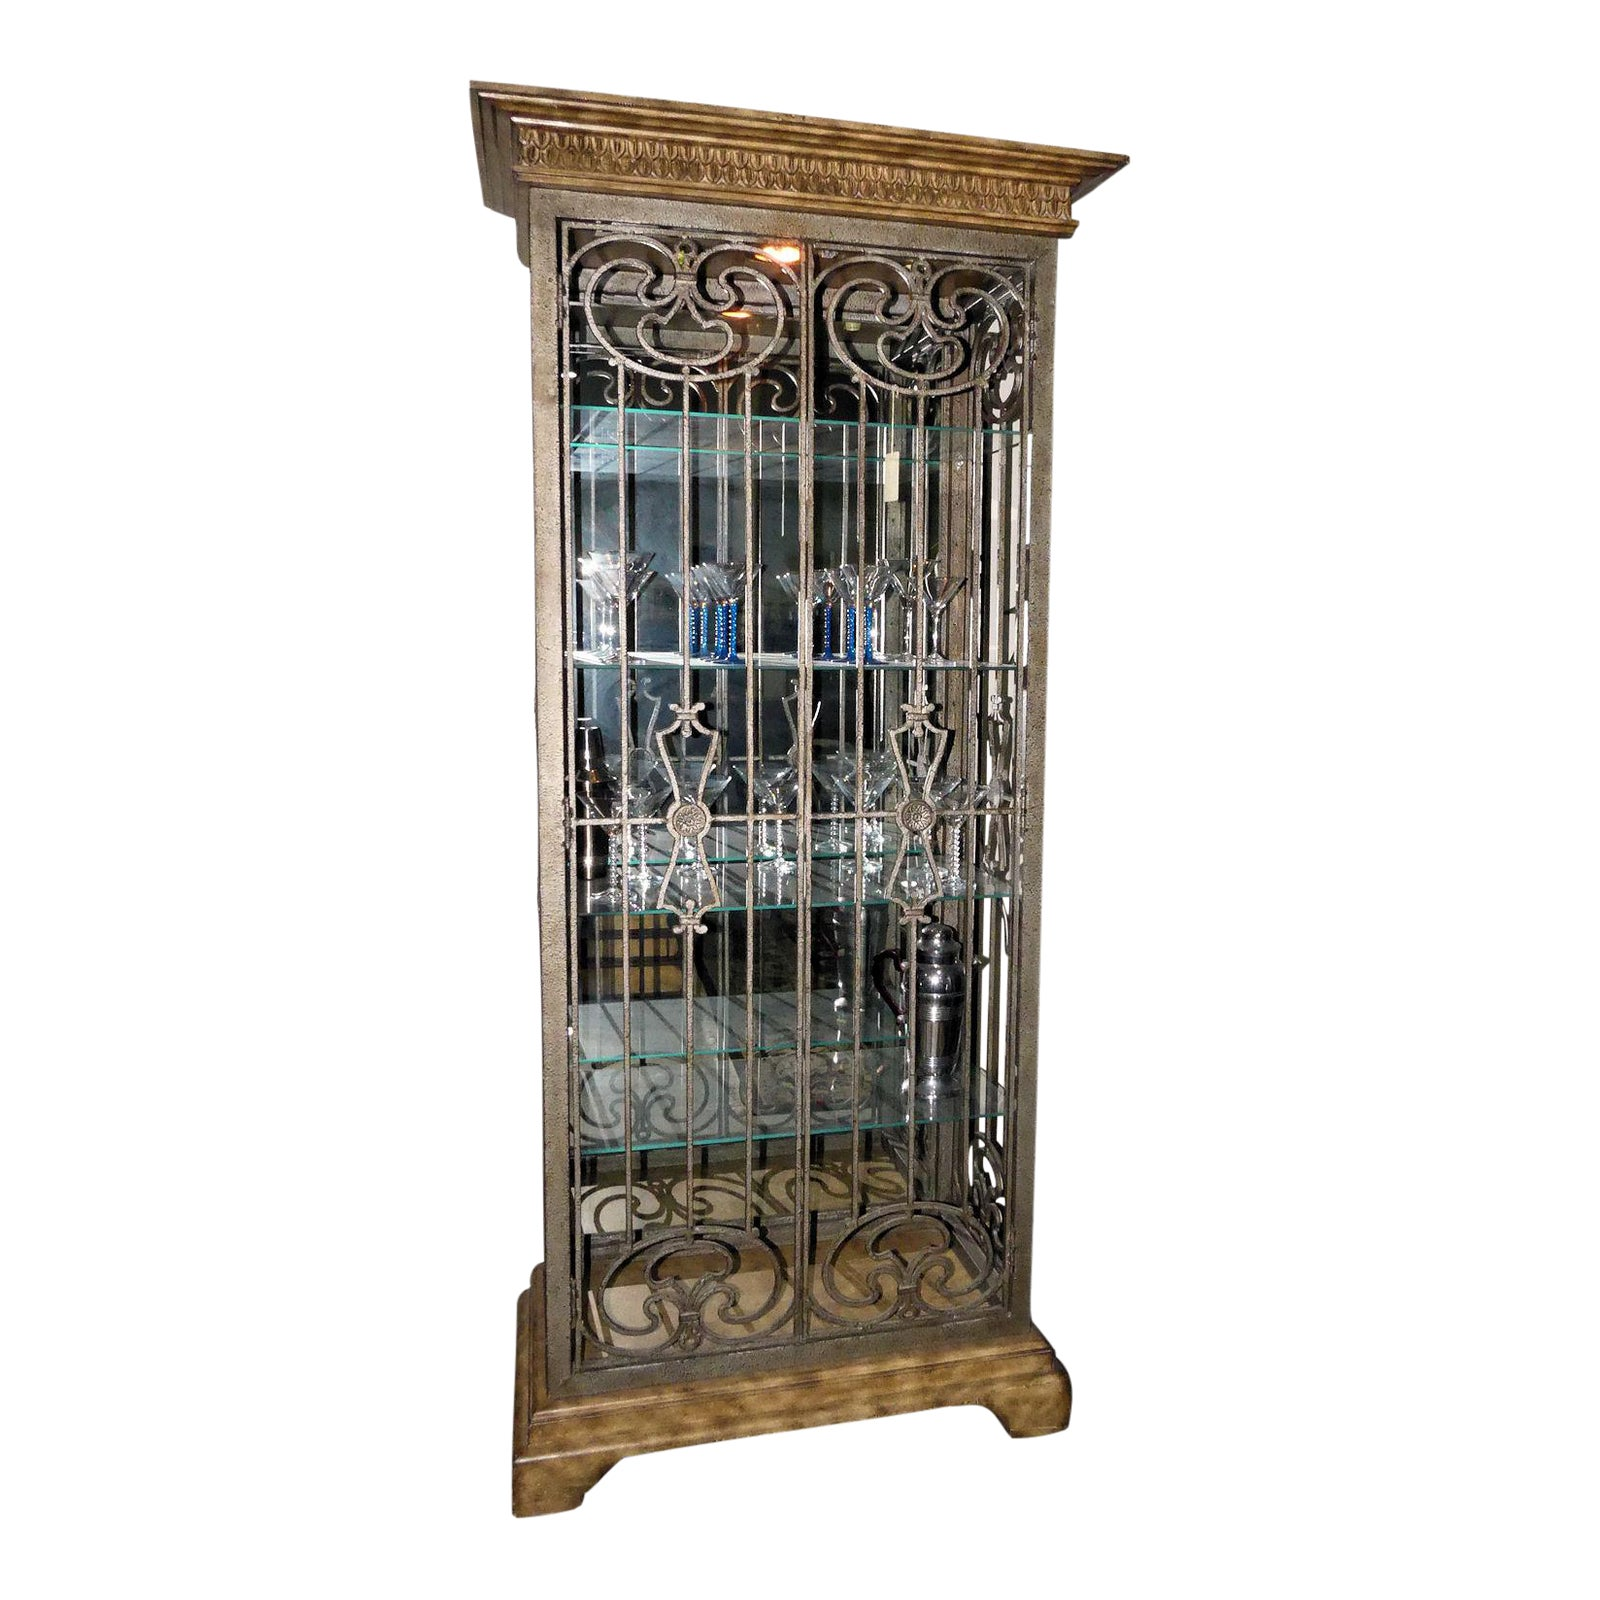 Lighted Curio Cabinet with Scrolled Iron Doors and Sides